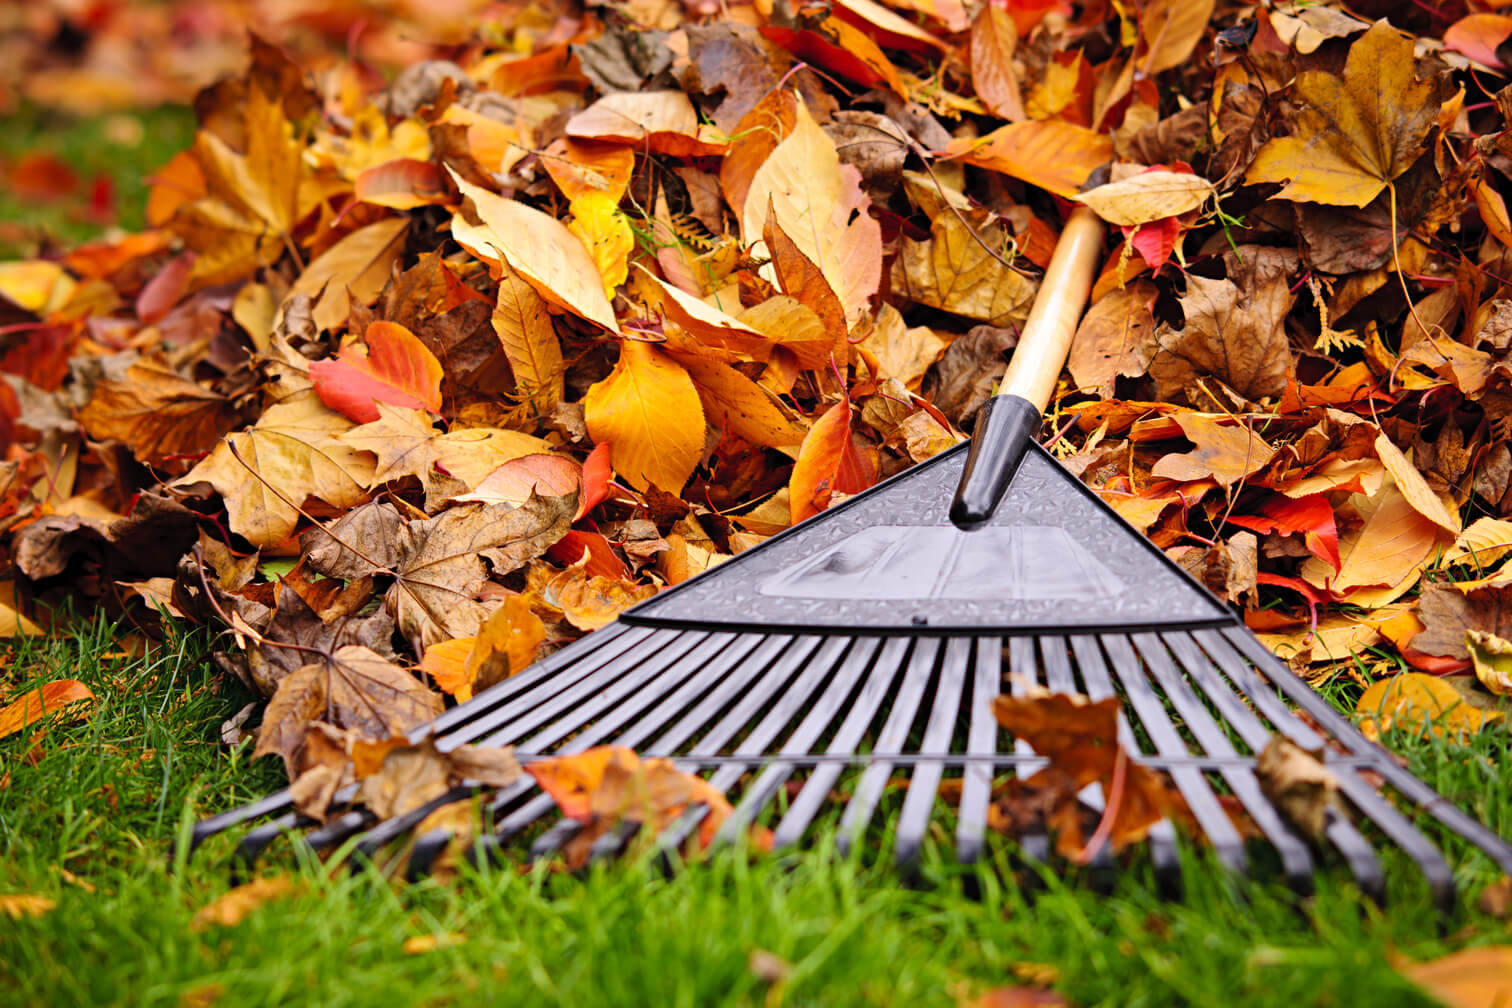 Simple Fall Lawn Care Tips